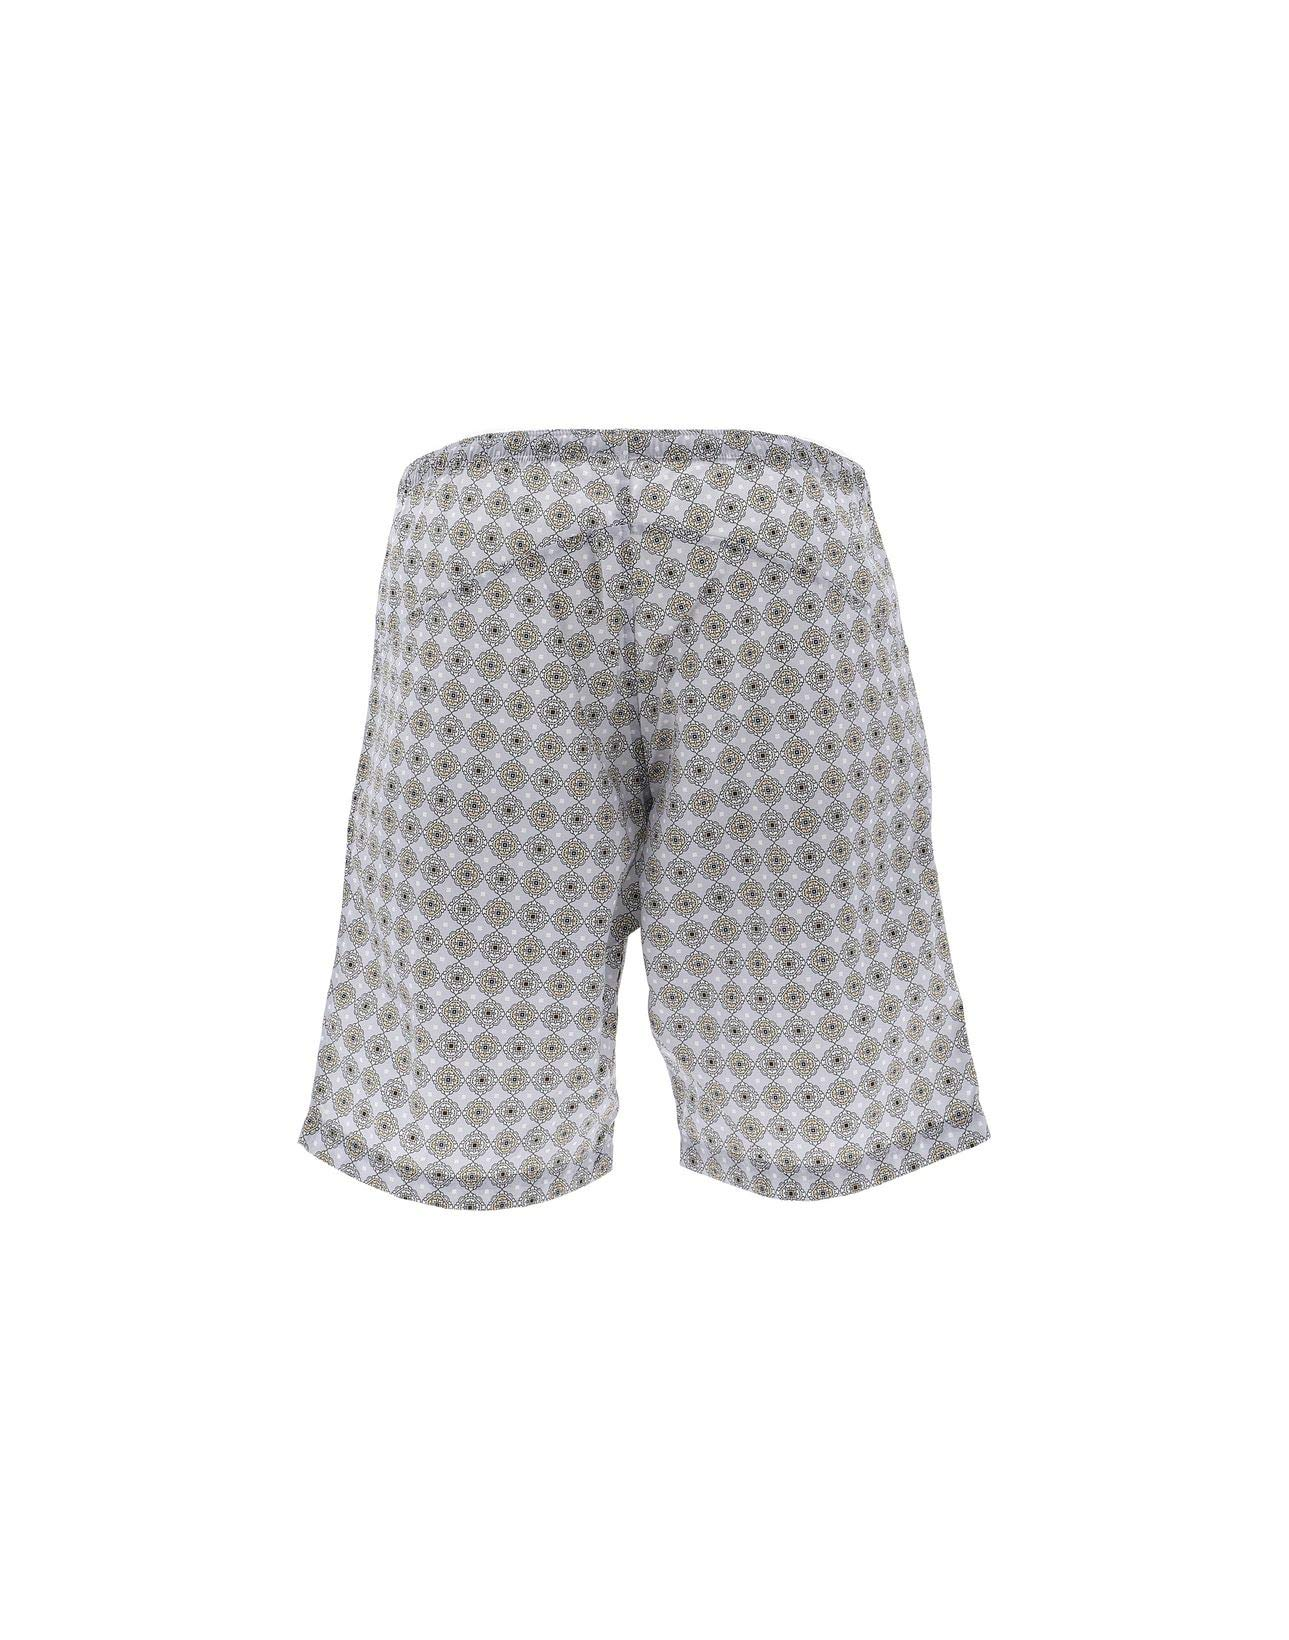 NEEDLES Men's Ej059bltgry Grey Nylon Trunks by NEEDLES (Image #2)